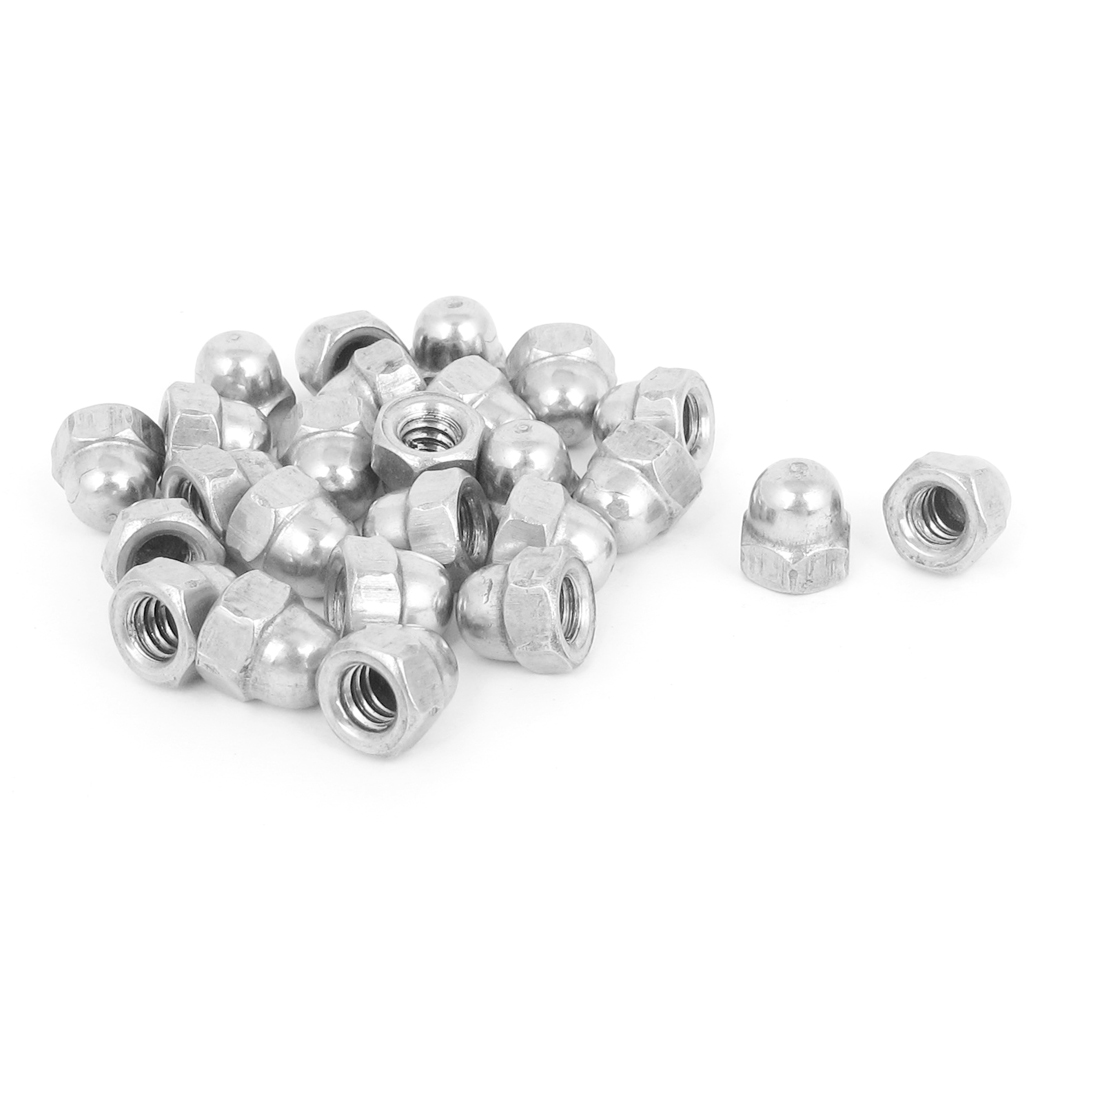 #10-24 304 Stainless Steel Dome Head Cap Acorn Hex Nuts Silver Tone 25Pcs